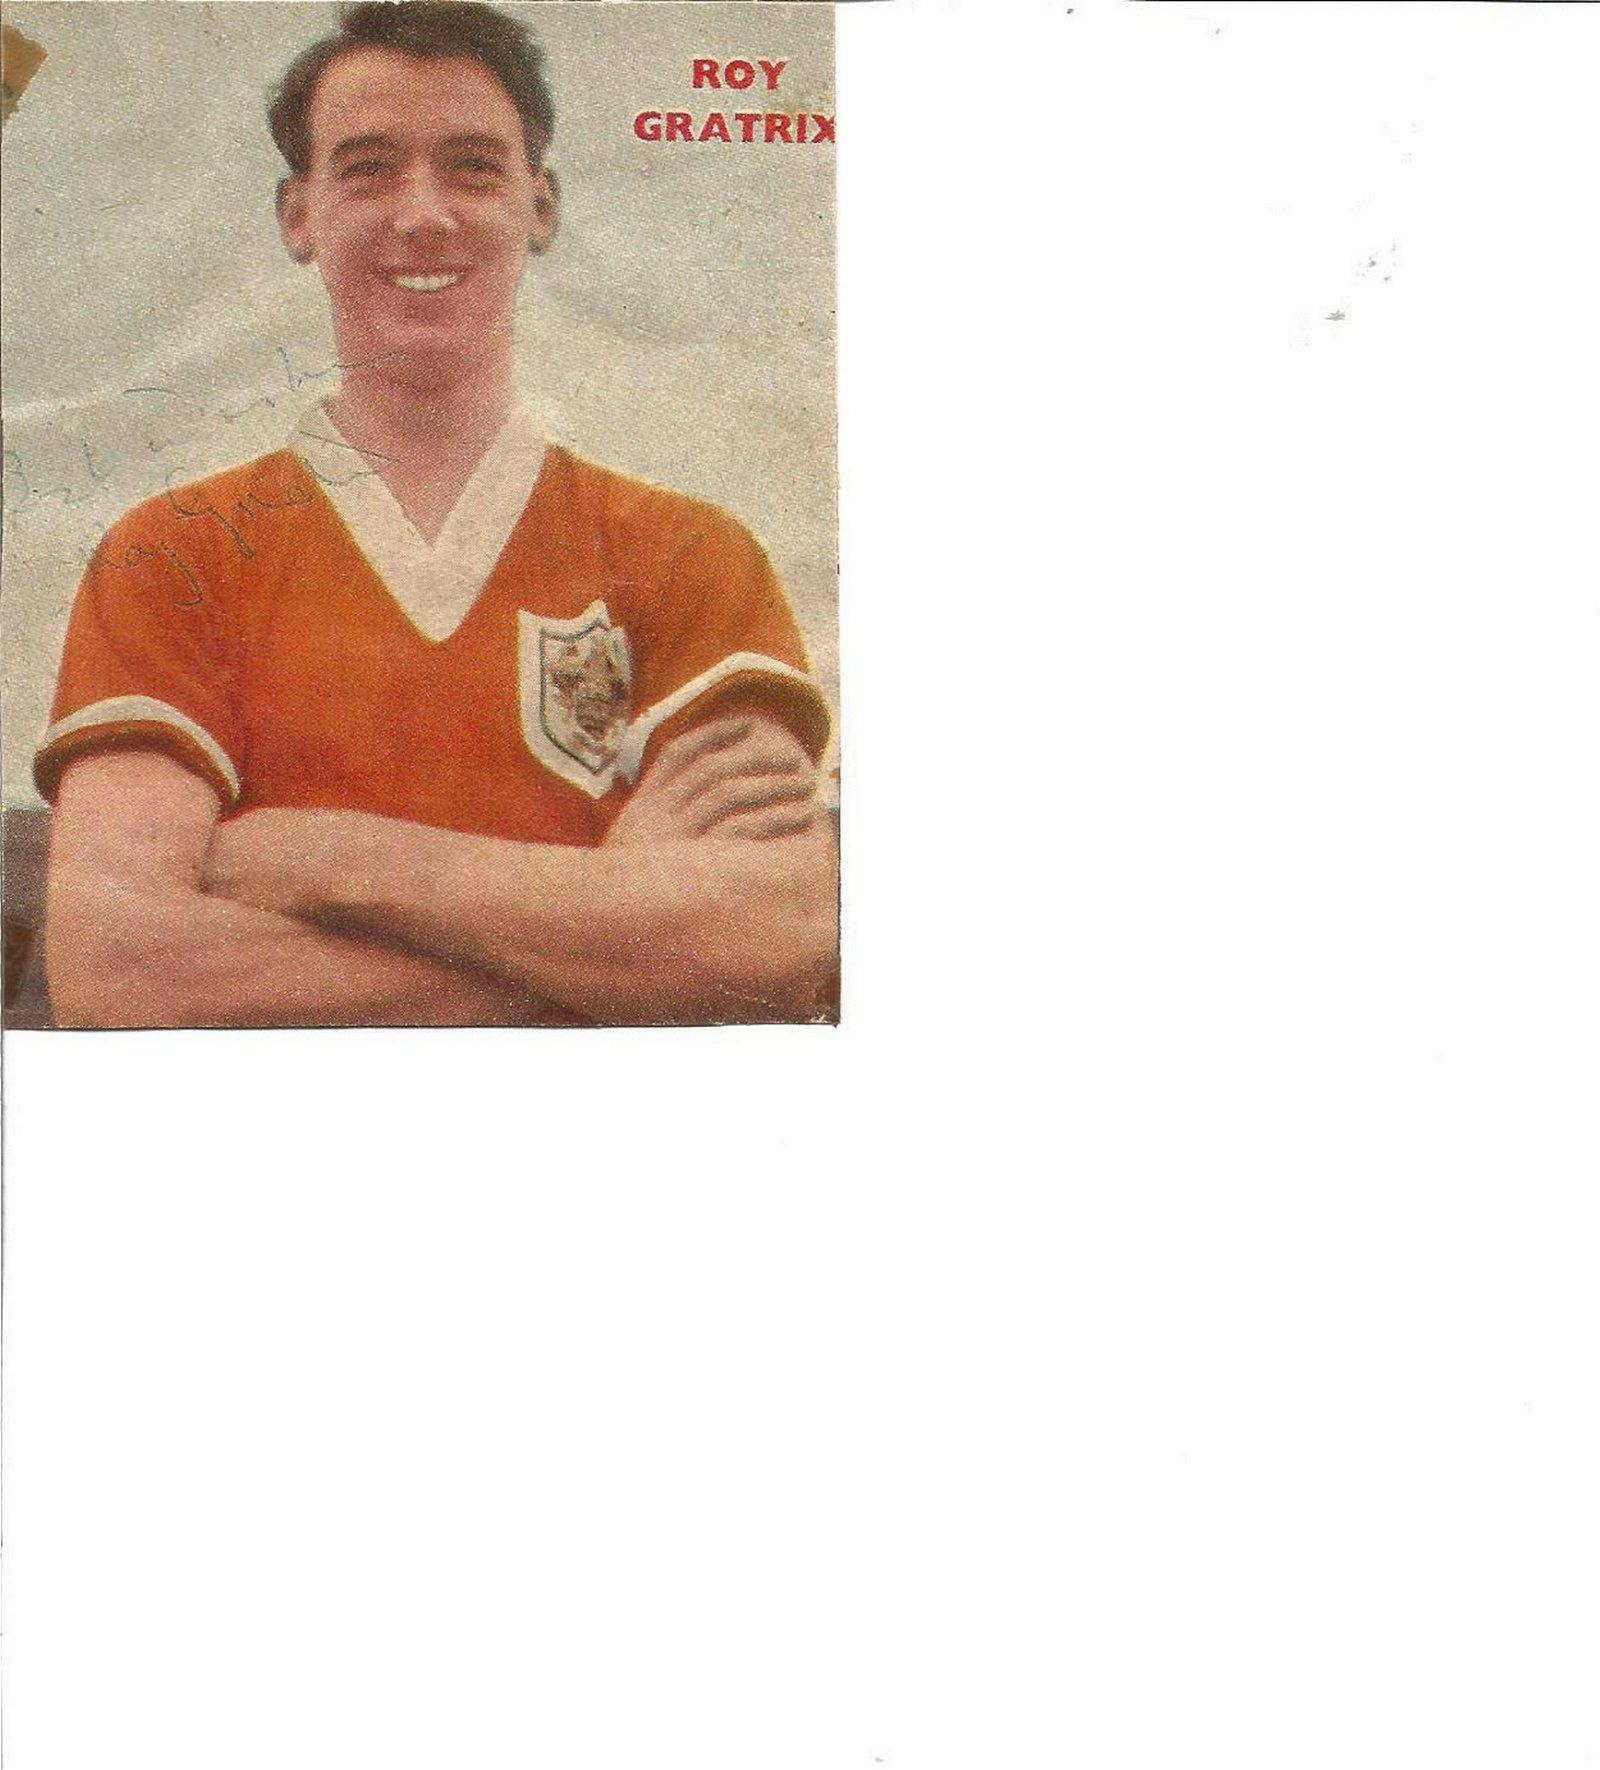 Football Legends Roy Gratrix Blackpool 4x3 signed